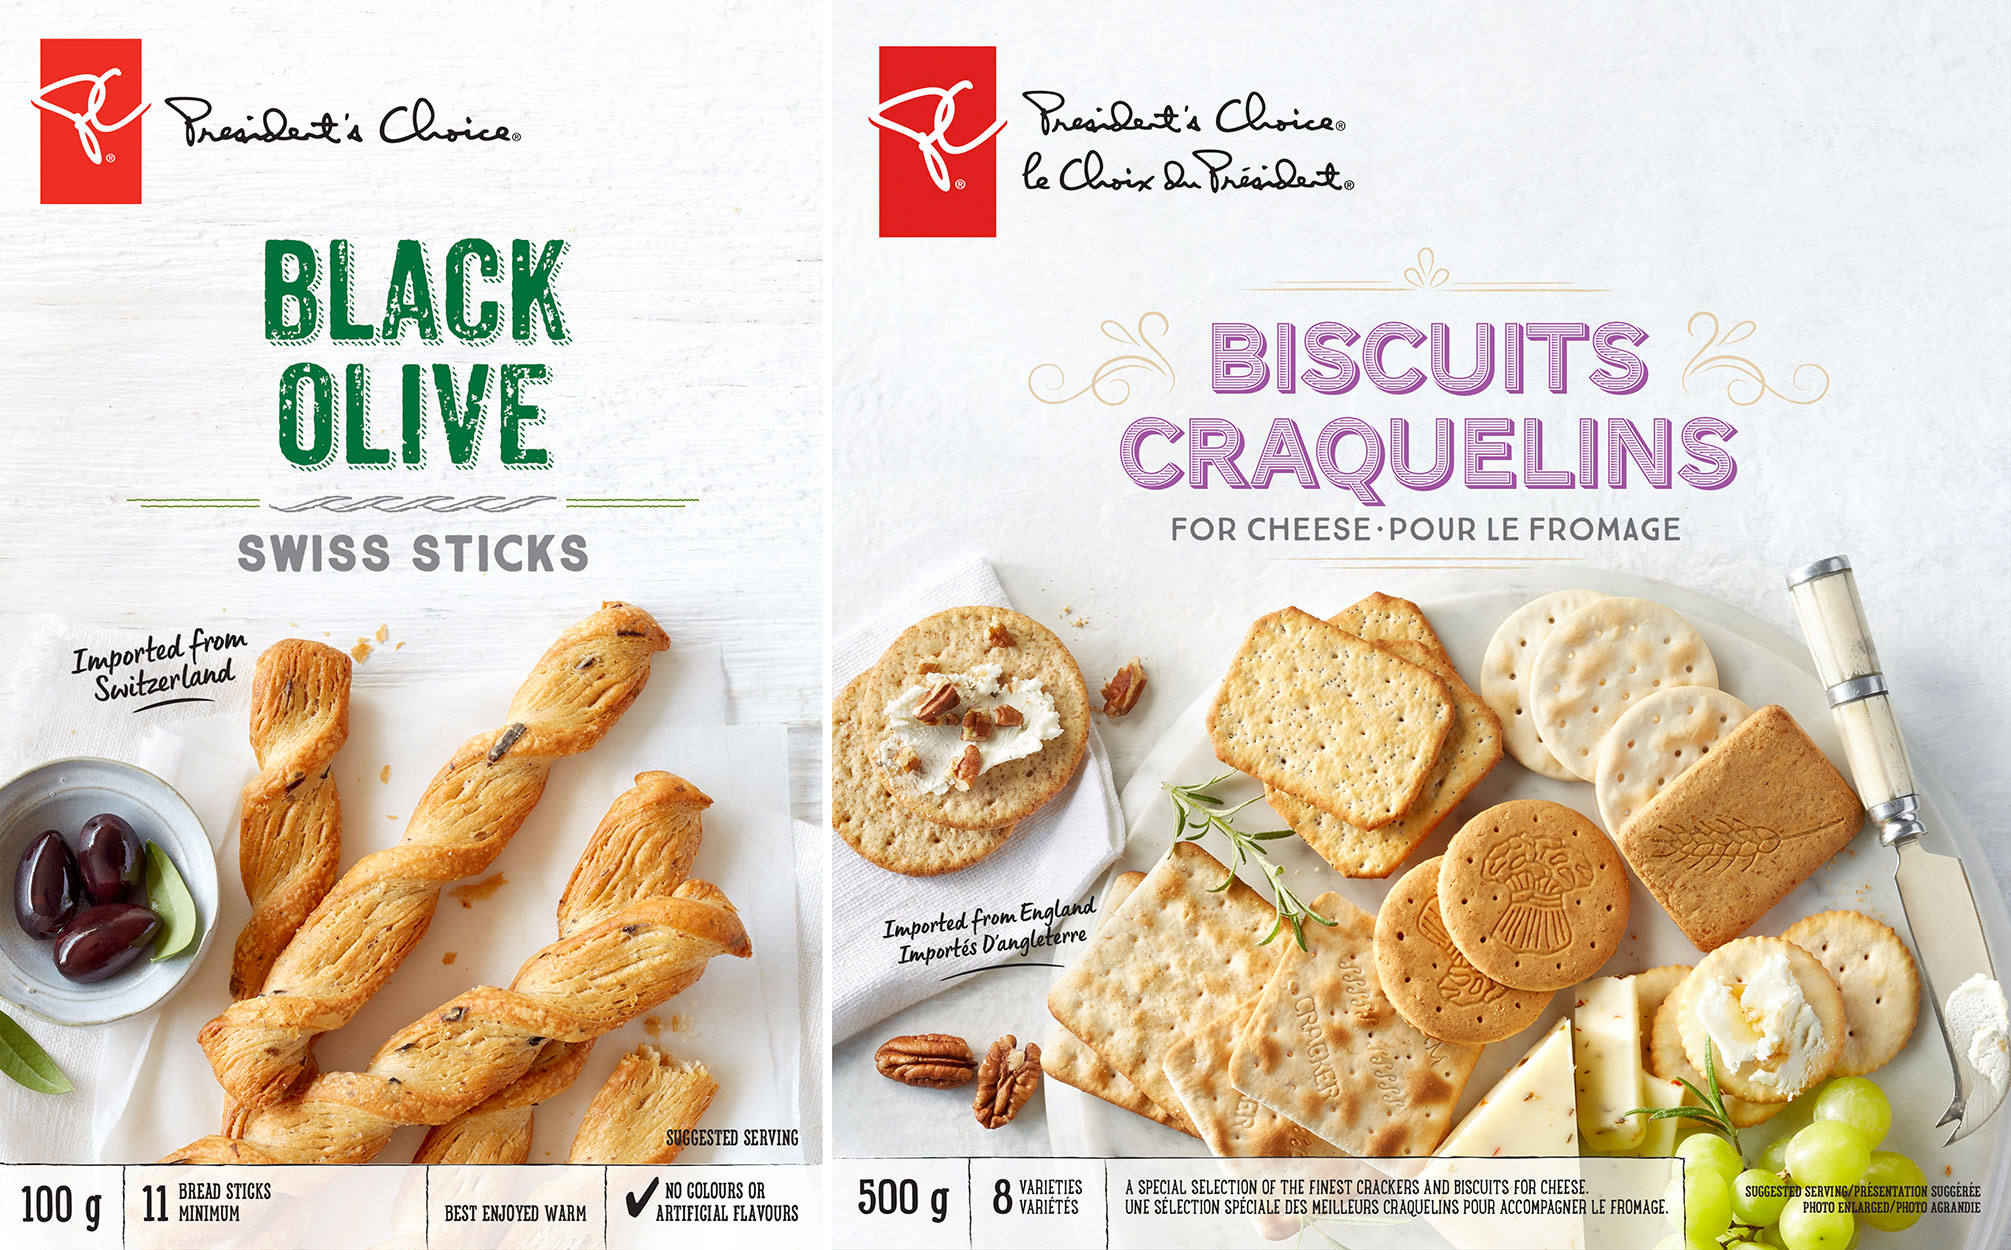 632825_PC_BiscuitsForCheese-FINAL_630537_PC_Breadsticks_BlackOlive-FINAL_DUO_WEB